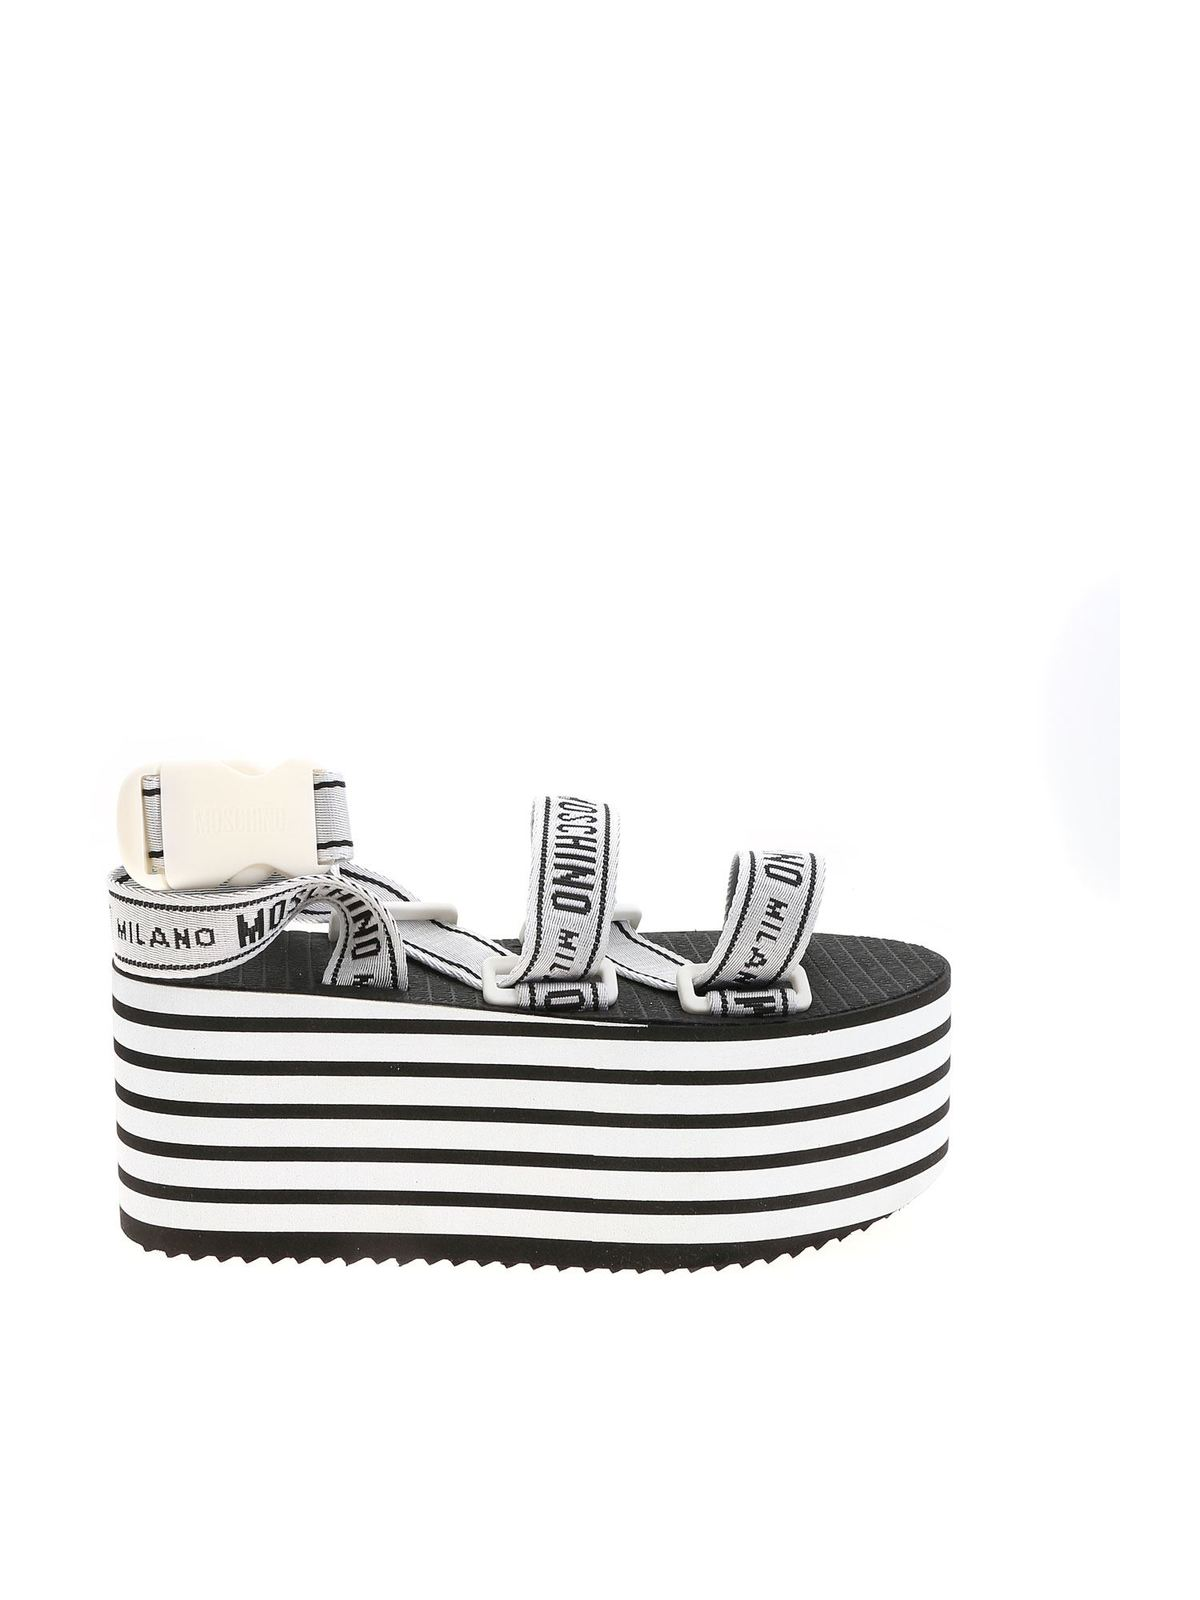 Moschino Wedges TAPE LOGO WEDGE SANDALS IN WHITE